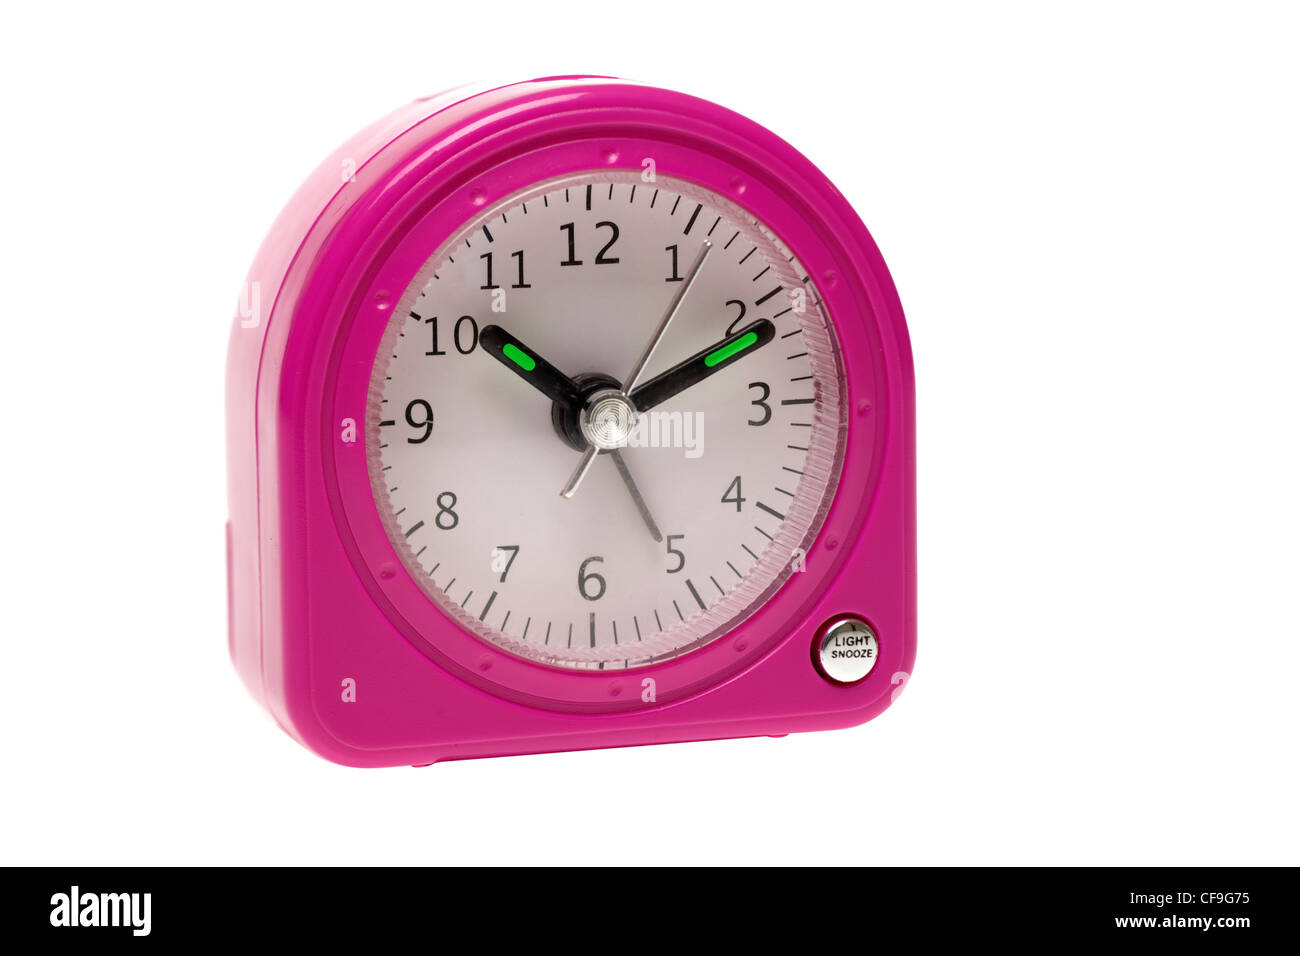 Small pink battery operated alarm clock - Stock Image